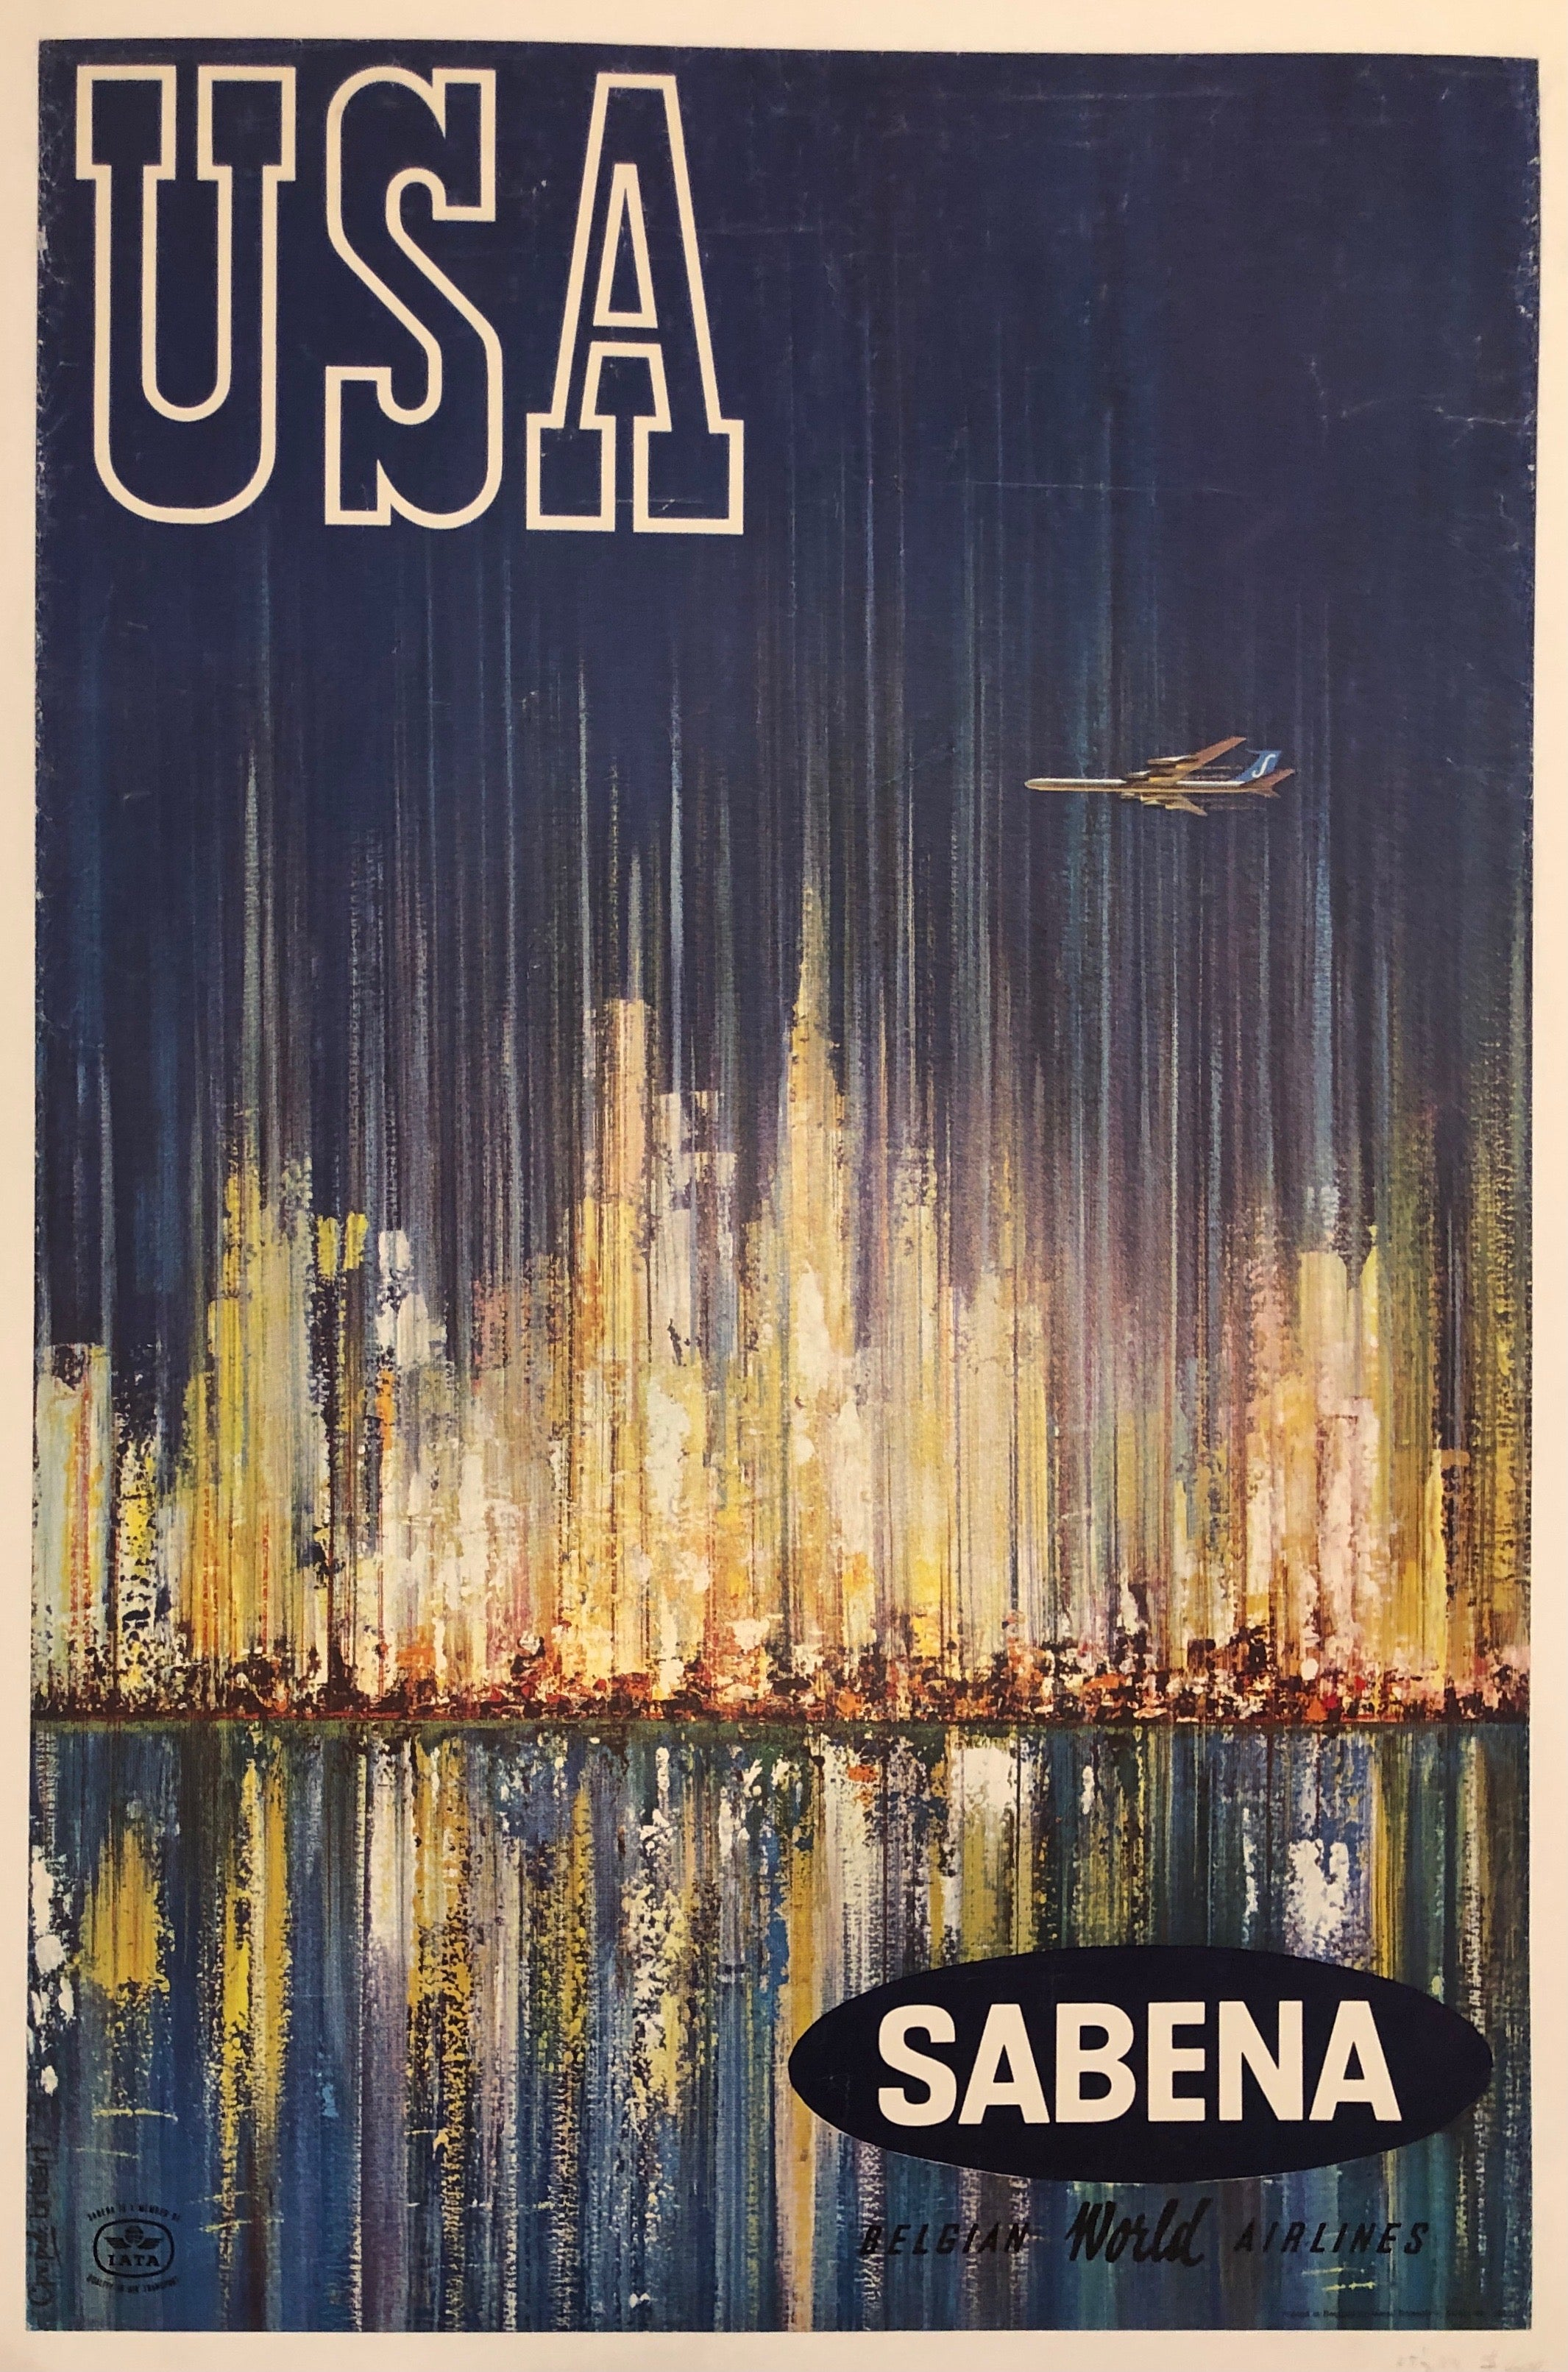 USA Sabena Airlines Travel Poster